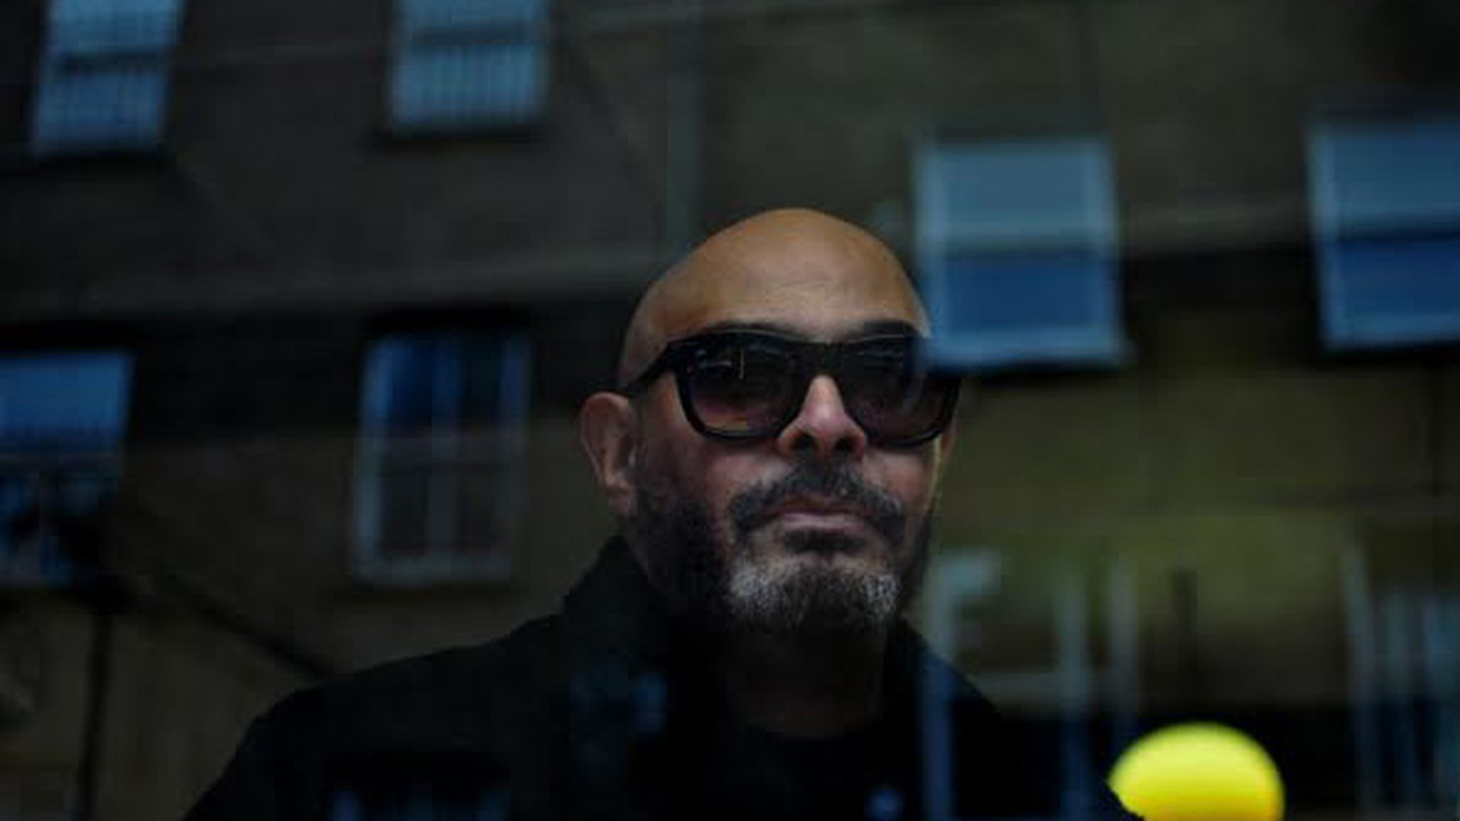 Barry Adamson is a multi-disciplined artist and self-taught musician who has worked closely with Nick Cave and the Bad Seeds and with maverick movie-makers like David Lynch and Oliver Stone.